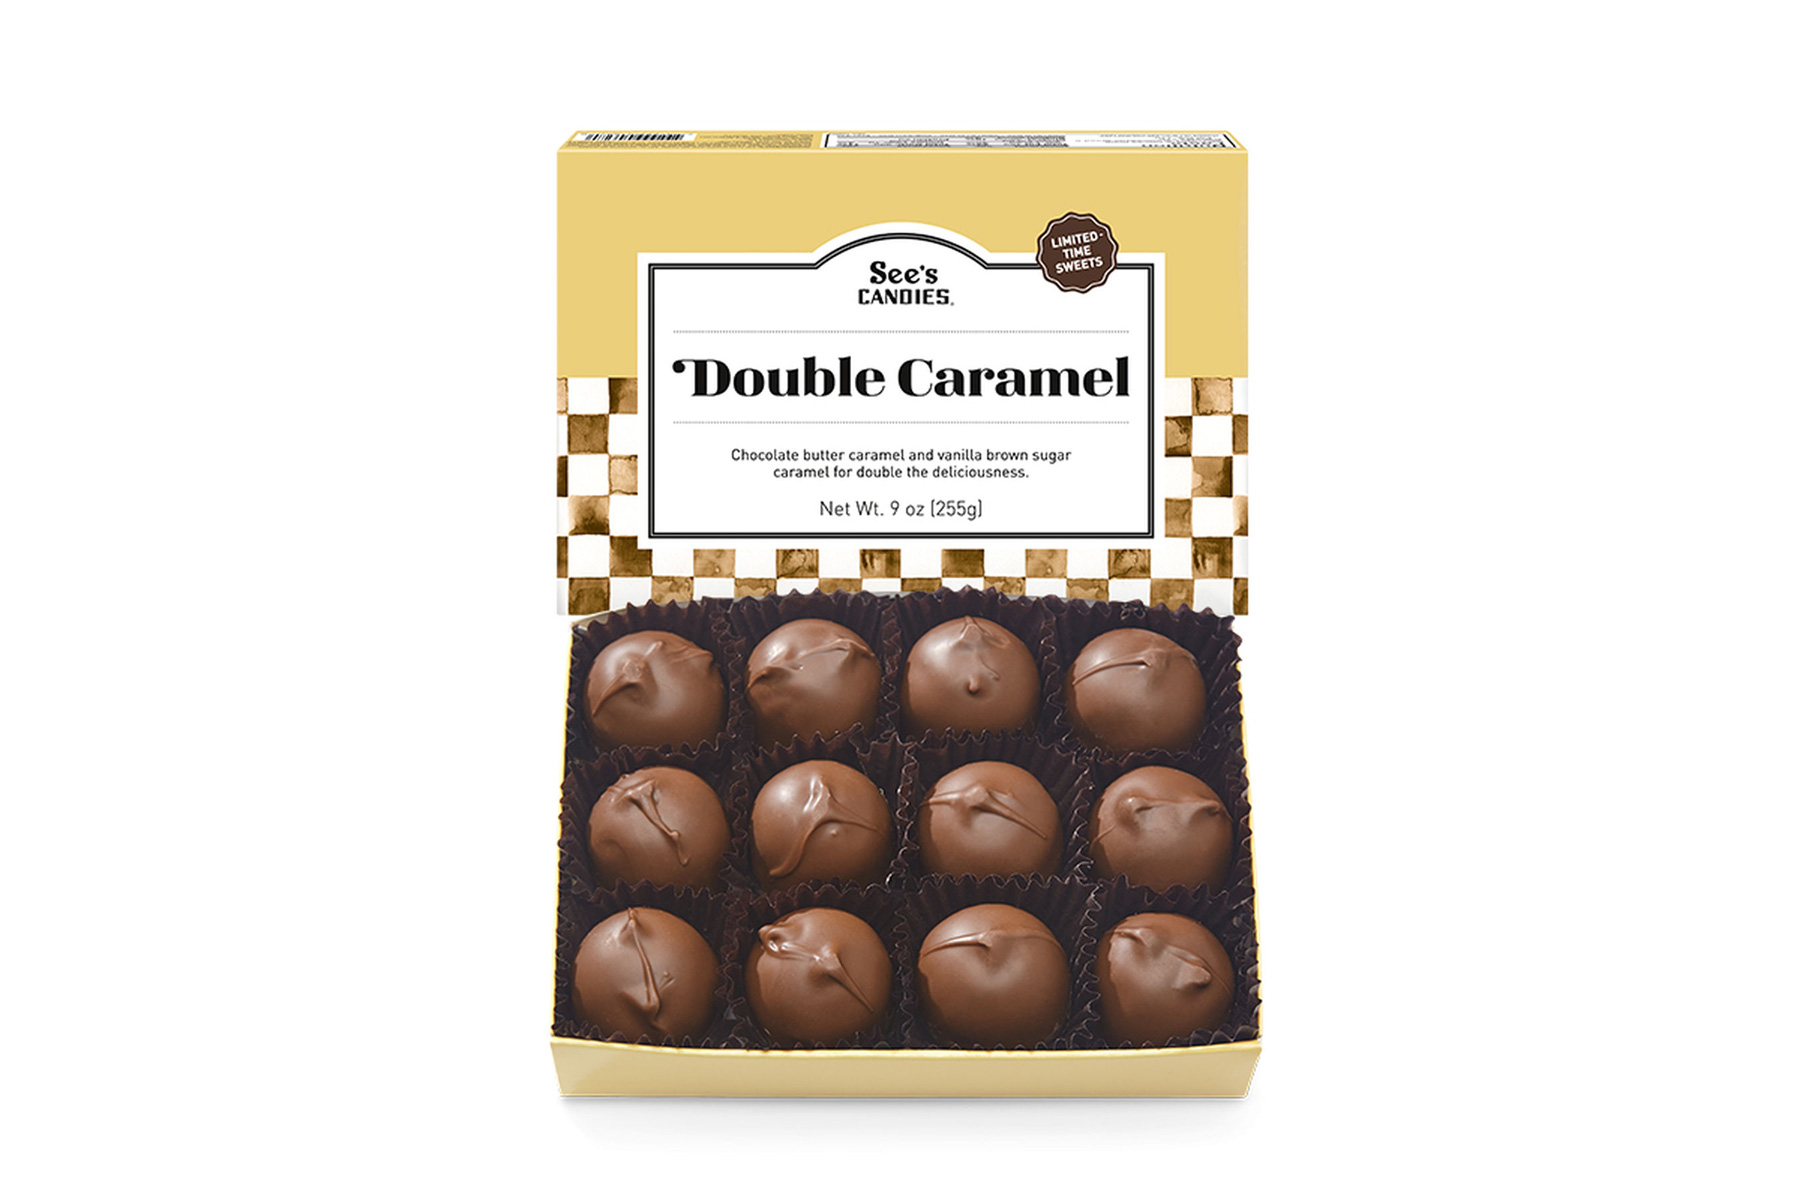 See's Candies Double Caramel